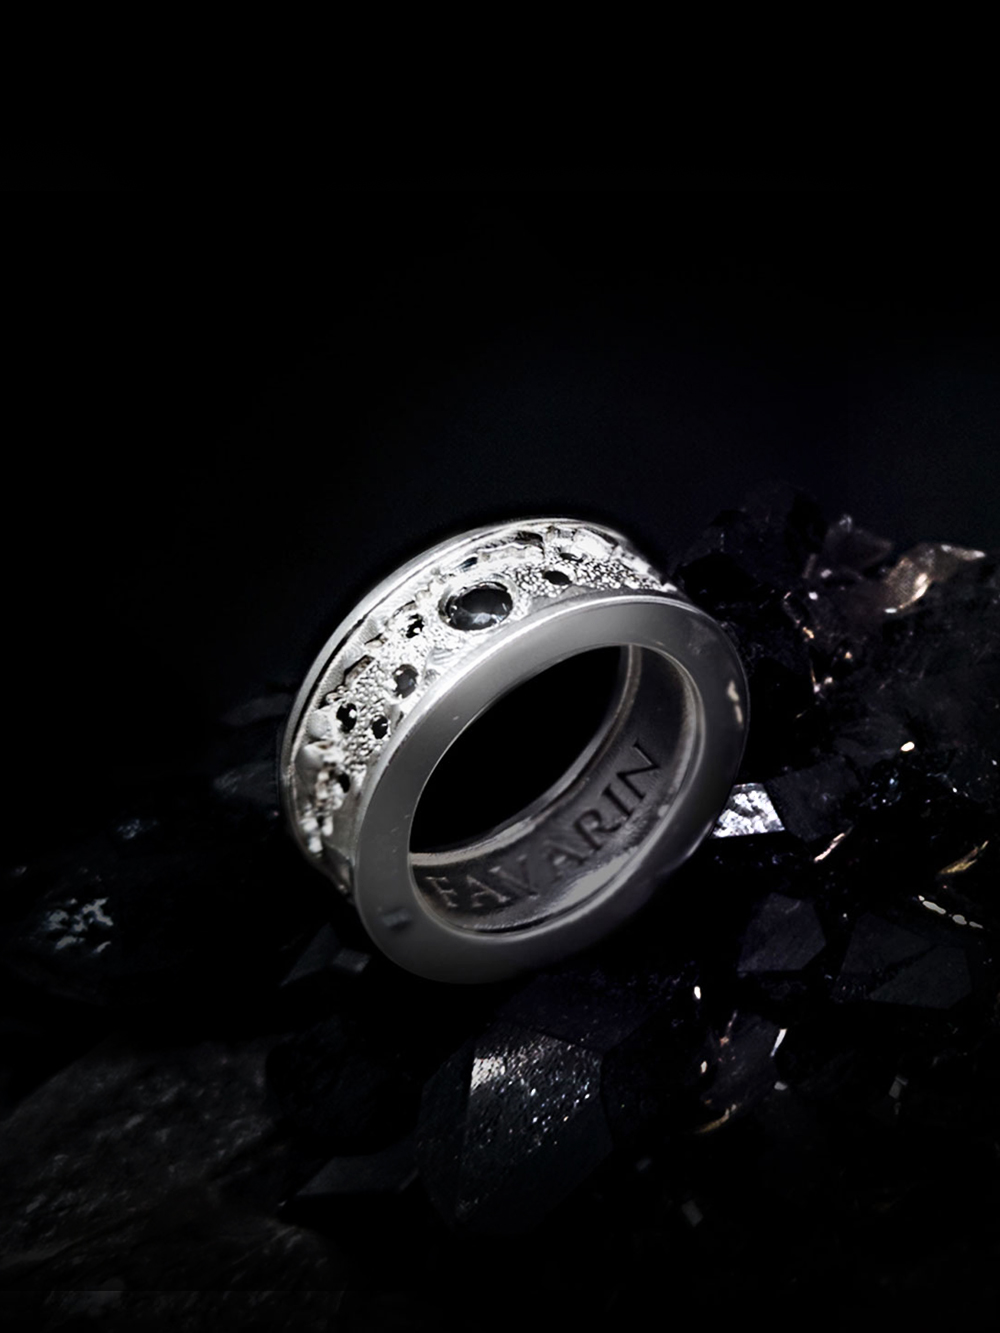 The inner secret n°3 - White Gold 18K & Black Diamonds 0,49 ct